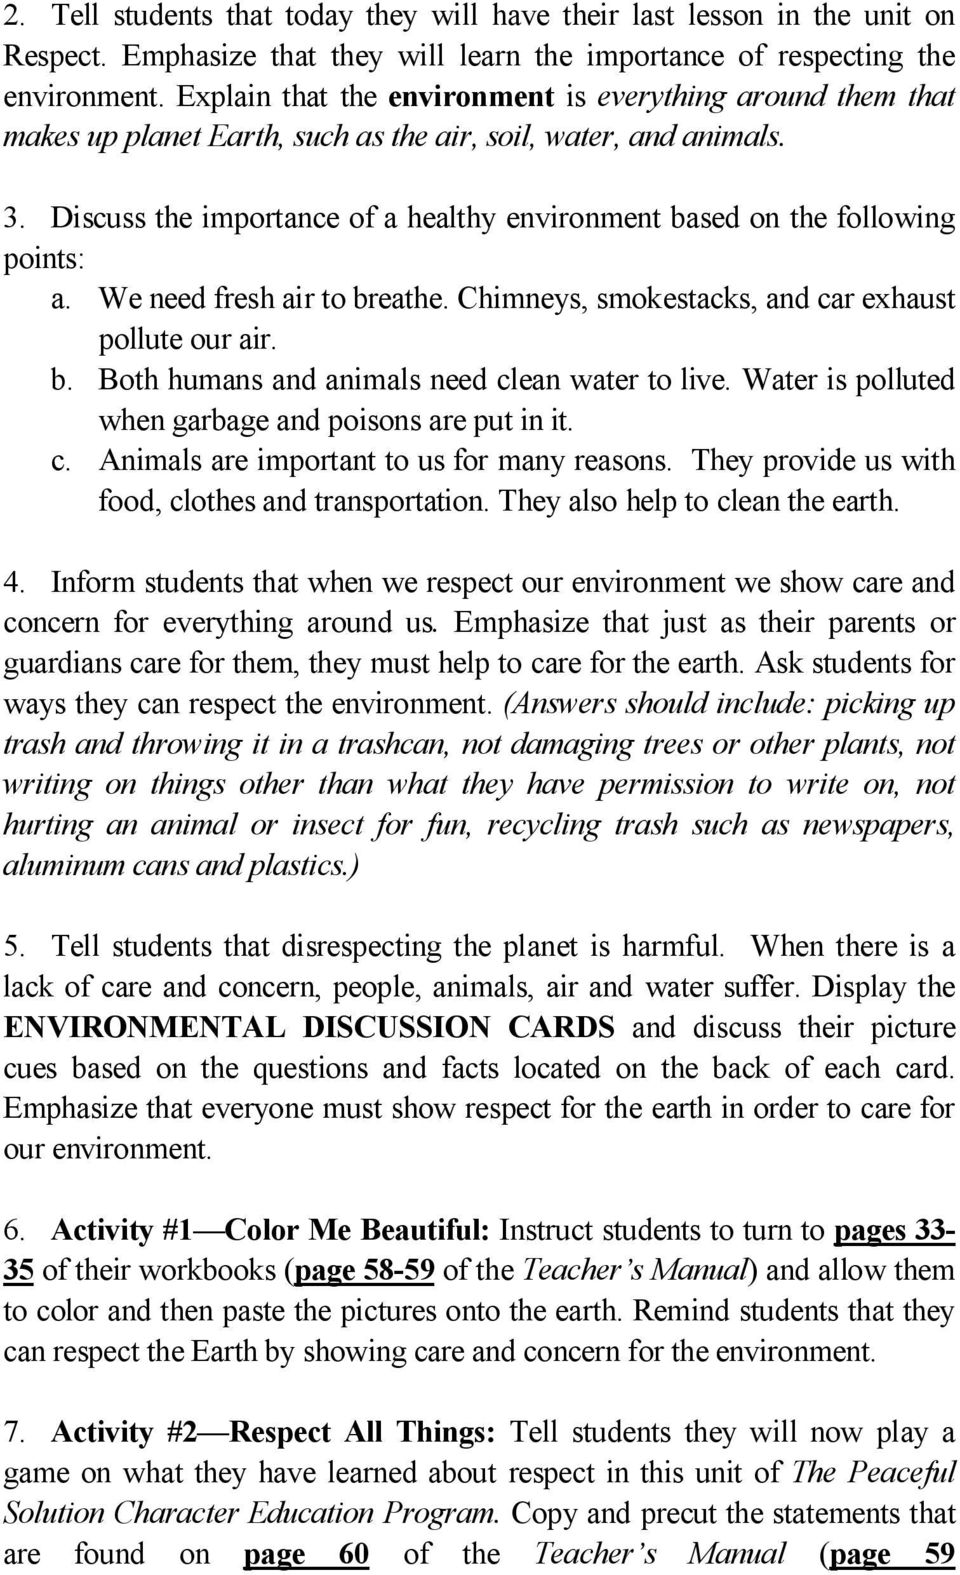 Discuss the importance of a healthy environment based on the following points: a. We need fresh air to breathe. Chimneys, smokestacks, and car exhaust pollute our air. b. Both humans and animals need clean water to live.